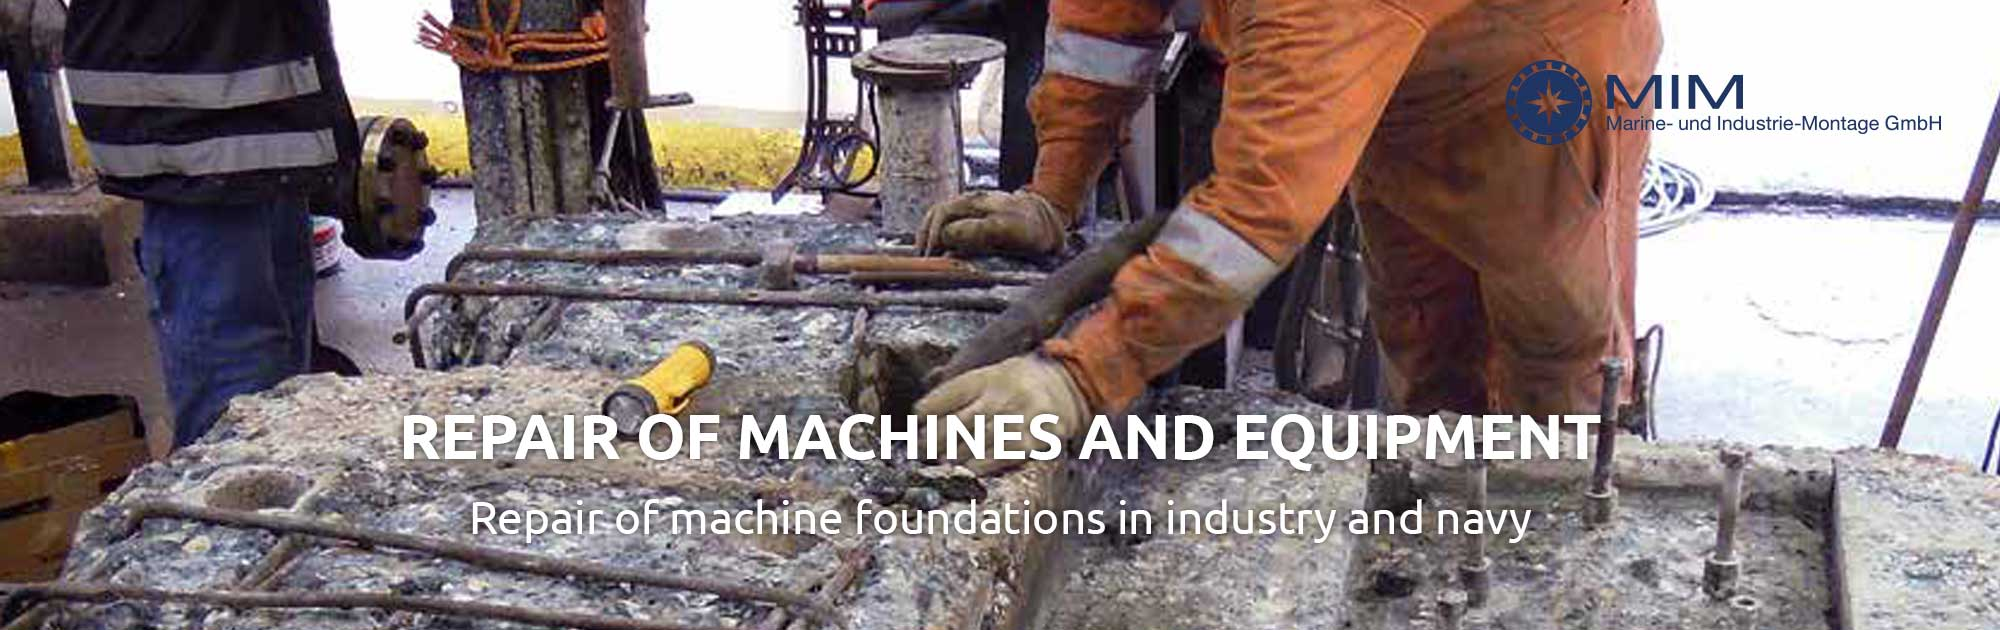 Repair of machines and equipment in industry and navy